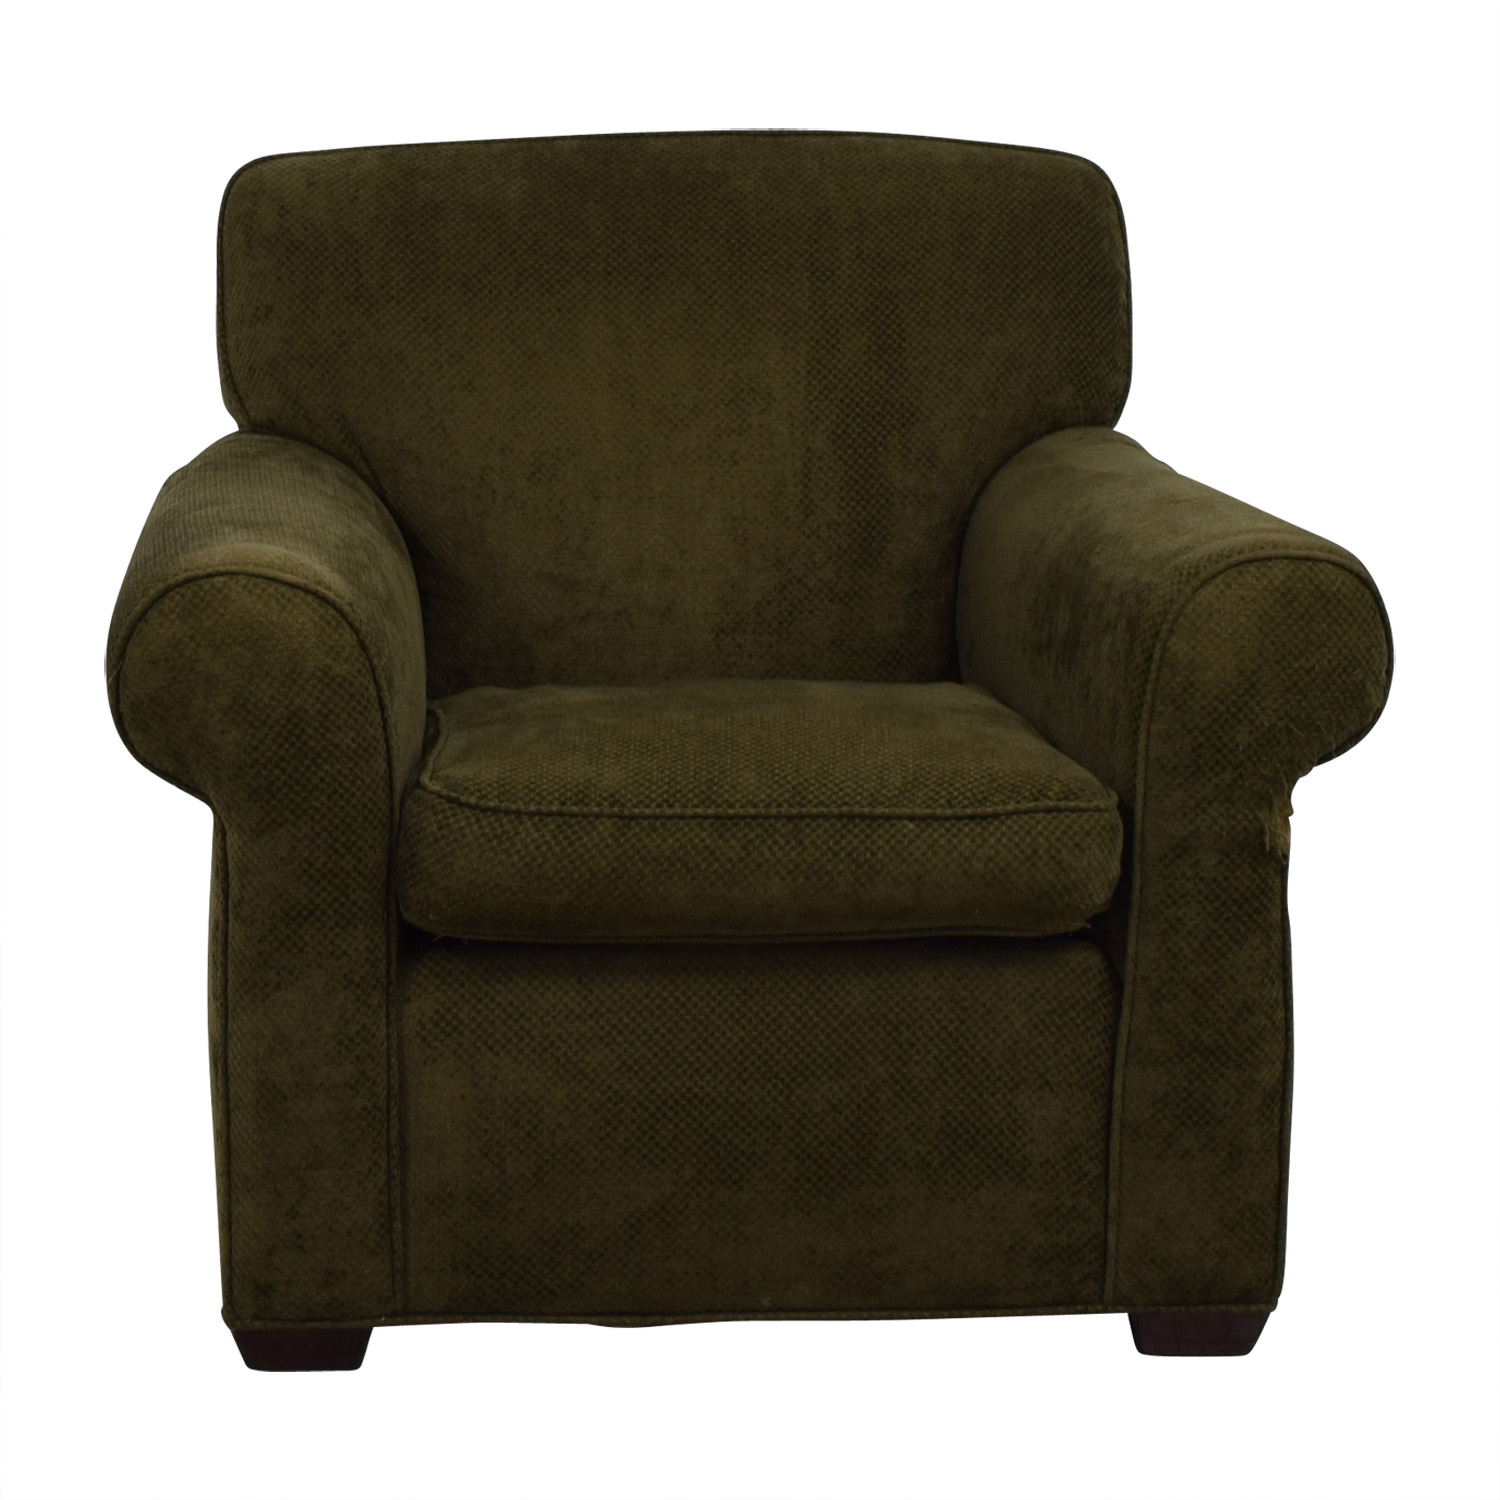 Large Olive Green Accent Chair / Chairs